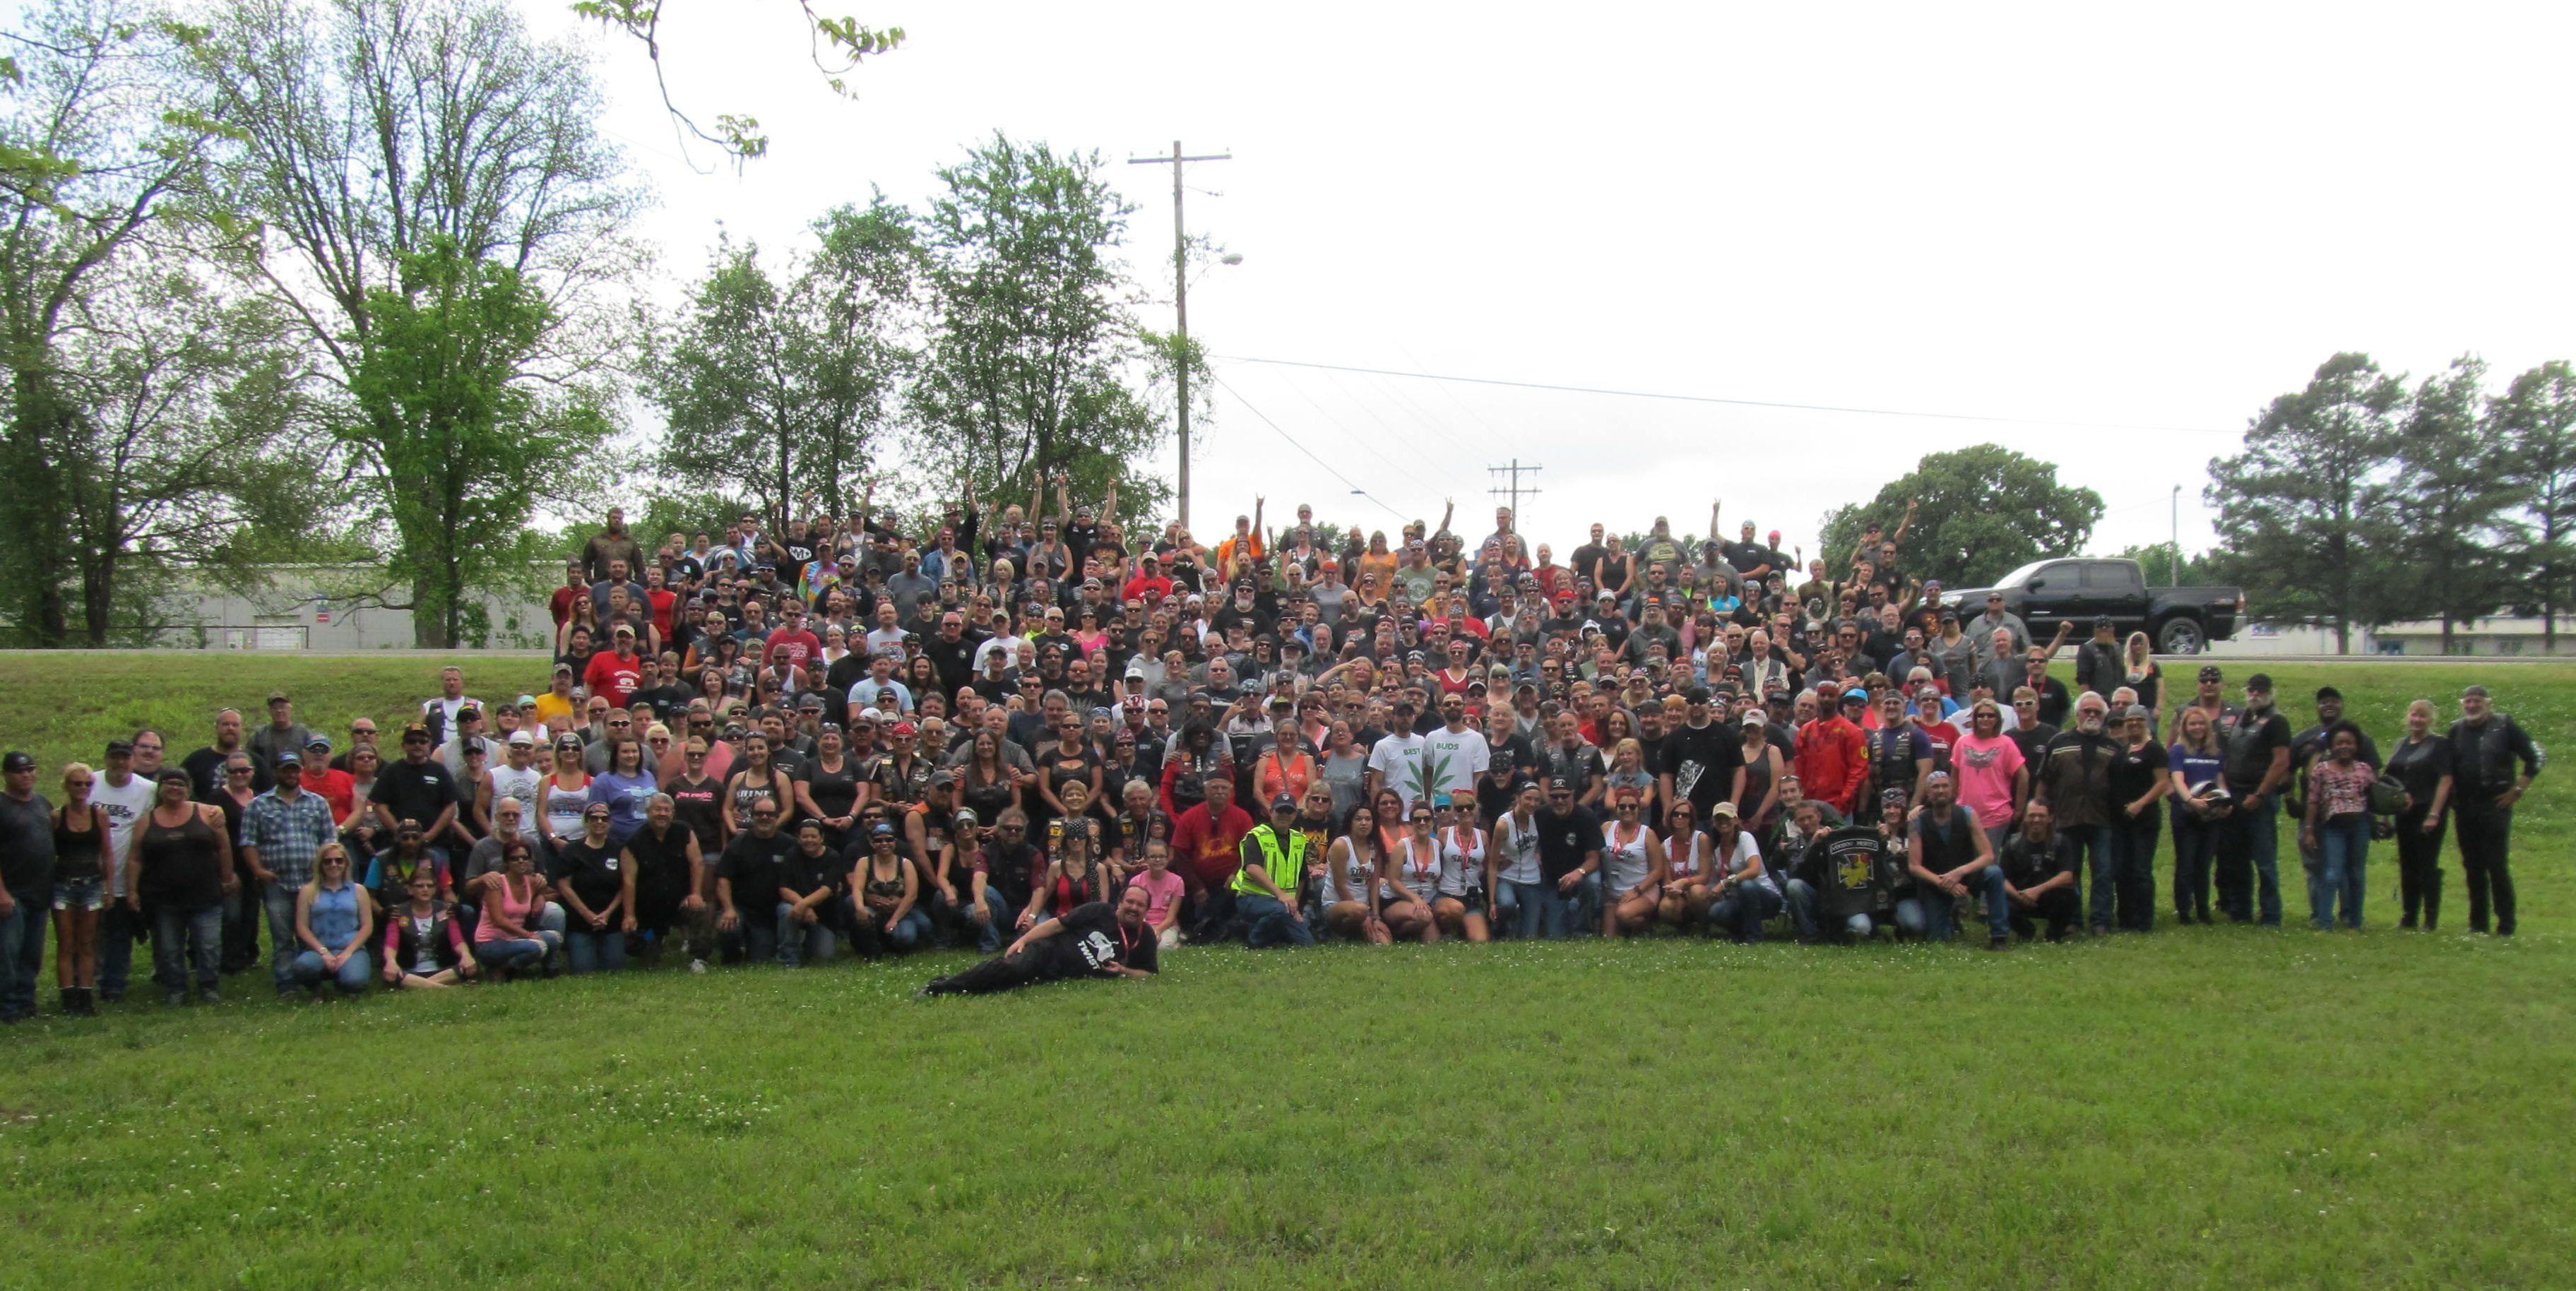 Thunder Through the Valley Motorcycle Parade Group Photo